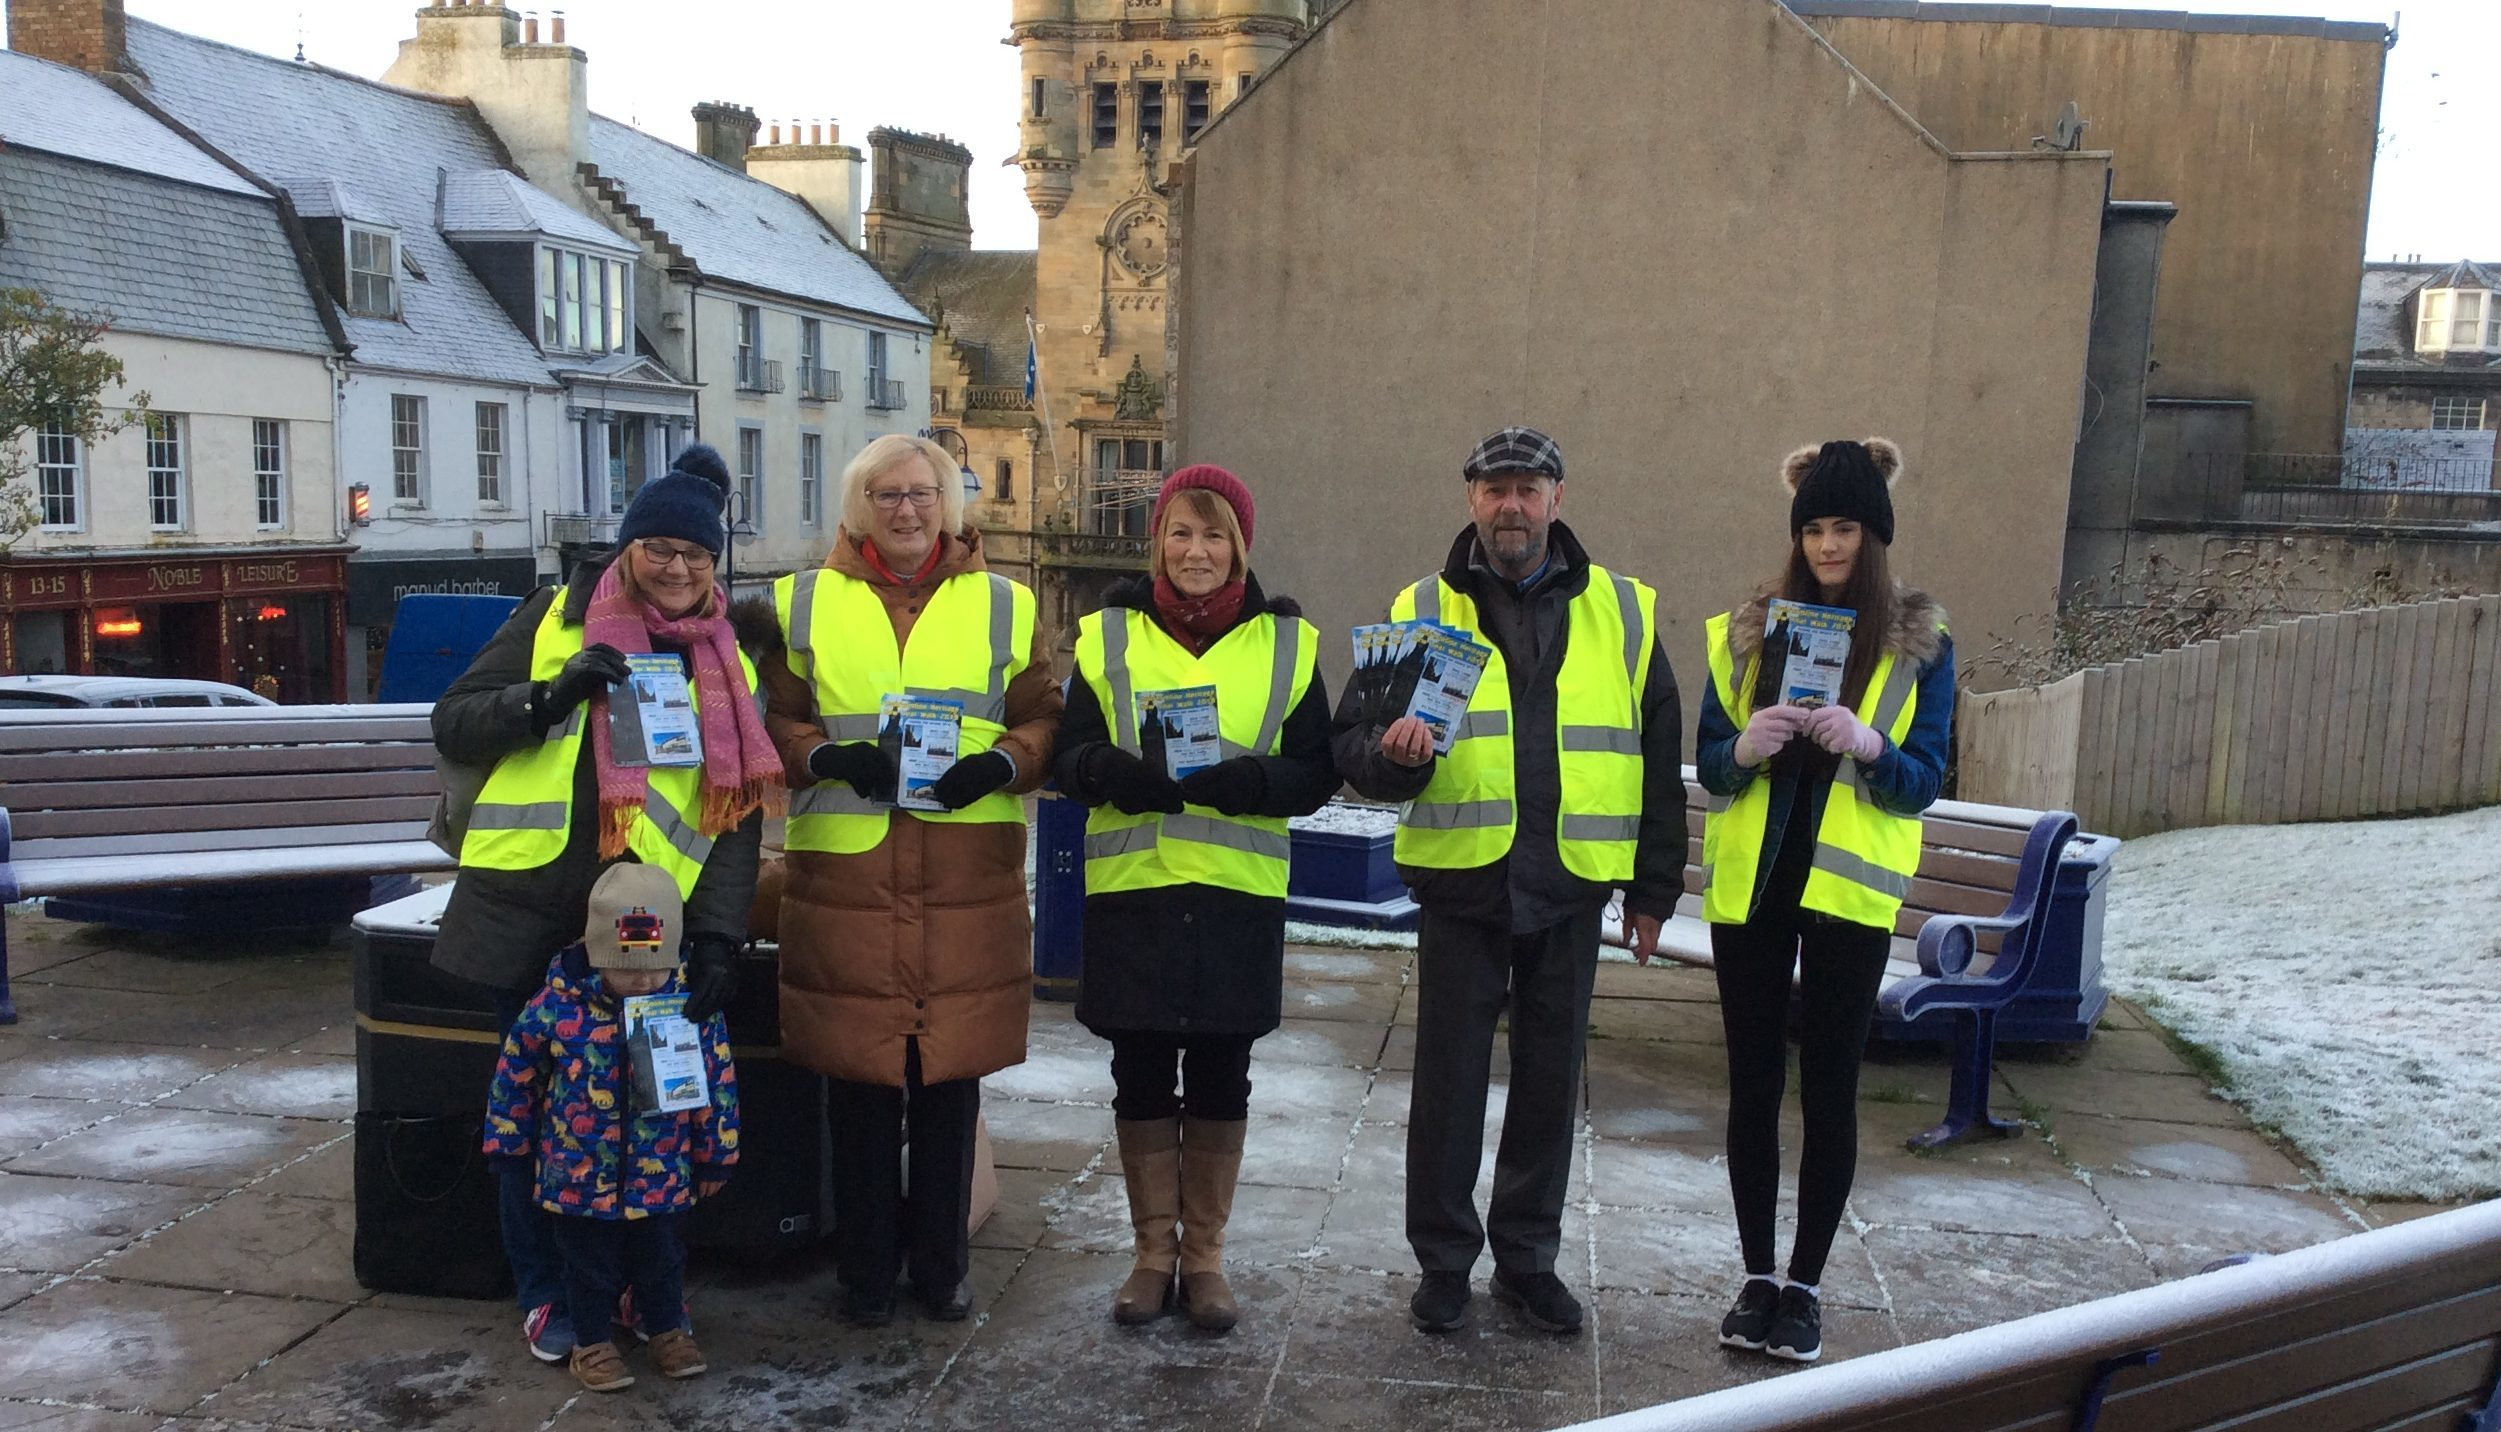 Some of the heritage guides, from left to right Lesley Henderson (with grandson Noah), Nancy Porteous, Elaine Campbell, Jack Pryde and trainee guide Adele Bradford.